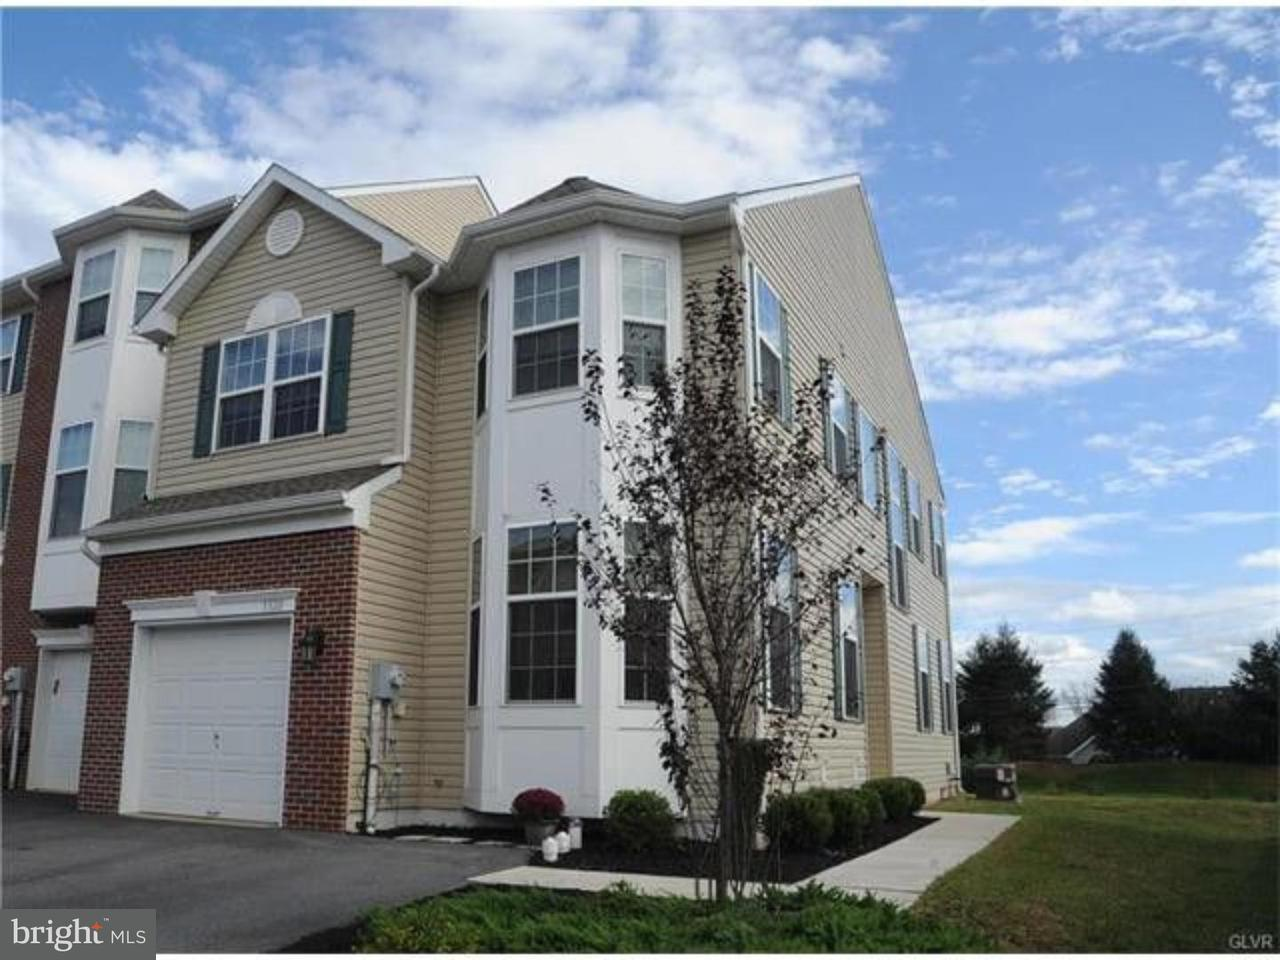 Townhouse for Rent at 5328 SPRING RIDGE DR E Macungie, Pennsylvania 18062 United States